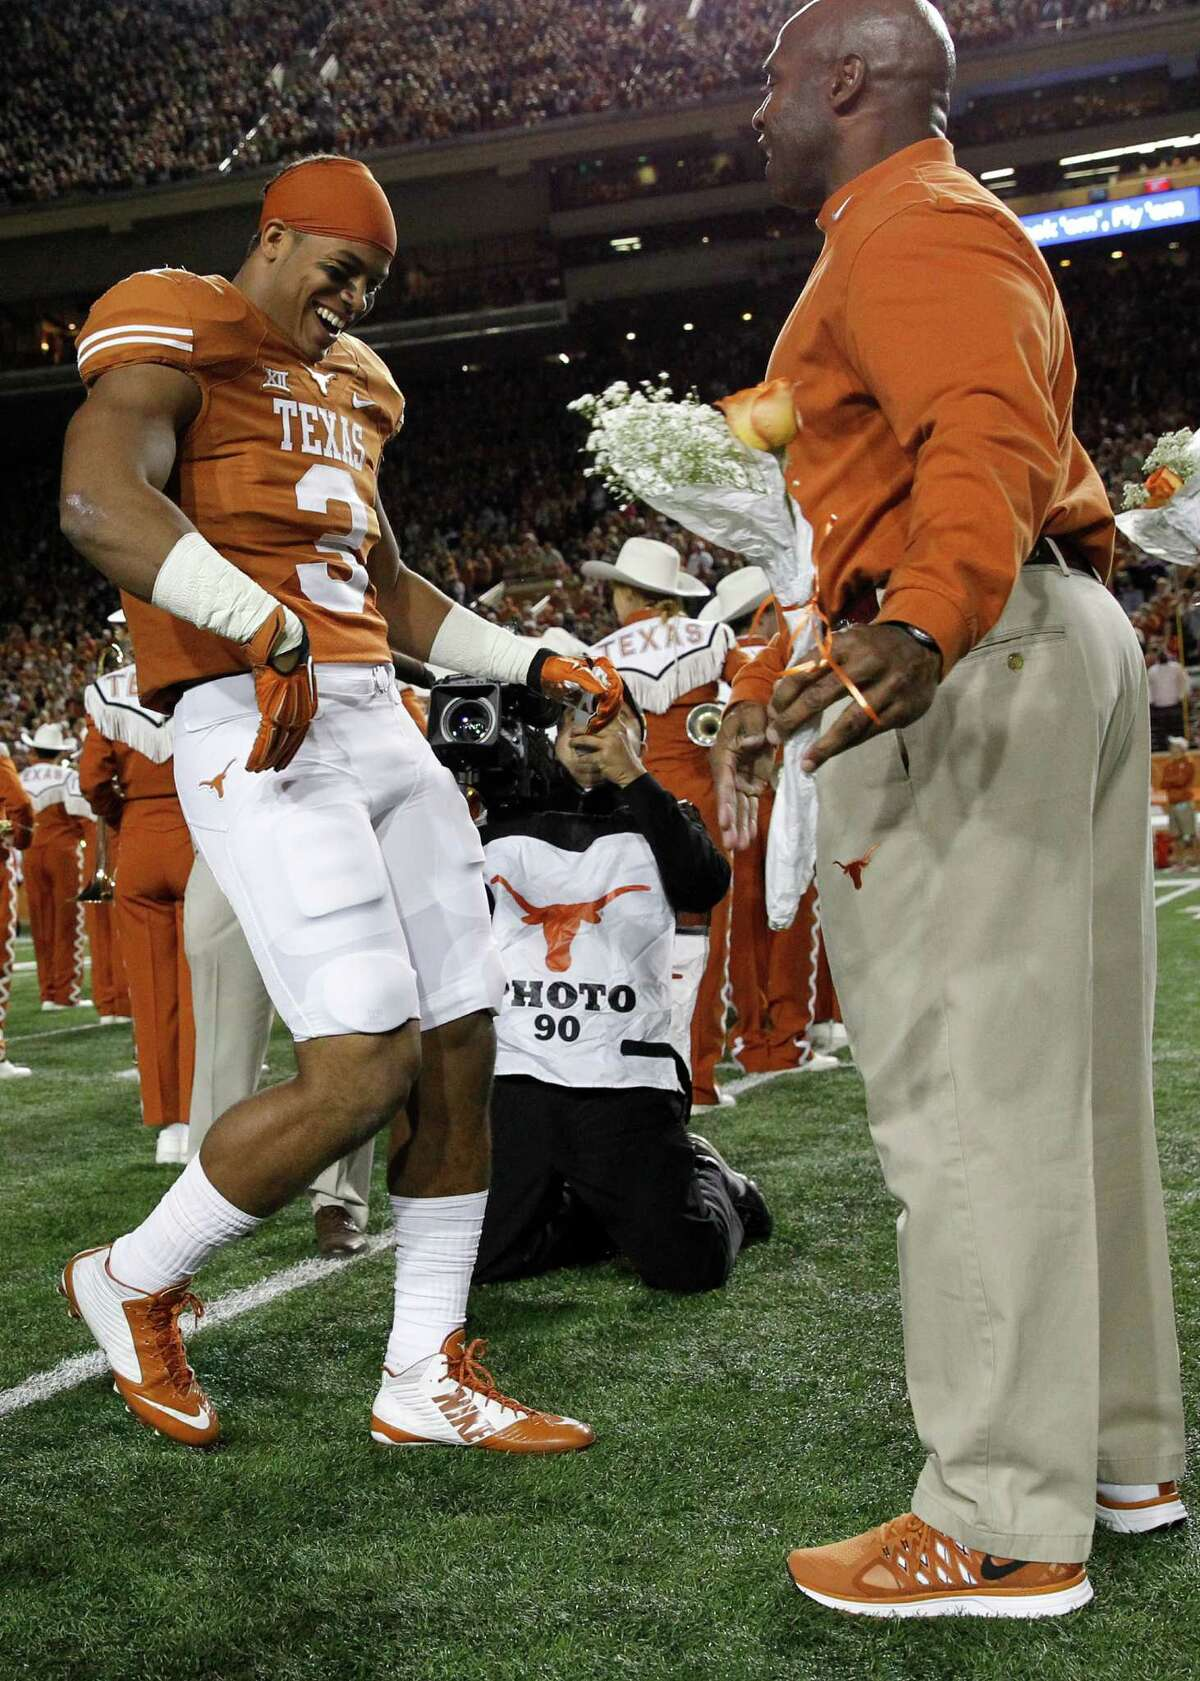 Jordan Hicks #3 of the Texas Longhorns is introduced and meets head coach Charlie Strong as the seniors were honored before playing the TCU Horned Frogs at the Darrell K Royal -Texas Memorial Stadium on November 27, 2014 in Austin. Texas. (Photo by Chris Covatta/Getty Images)